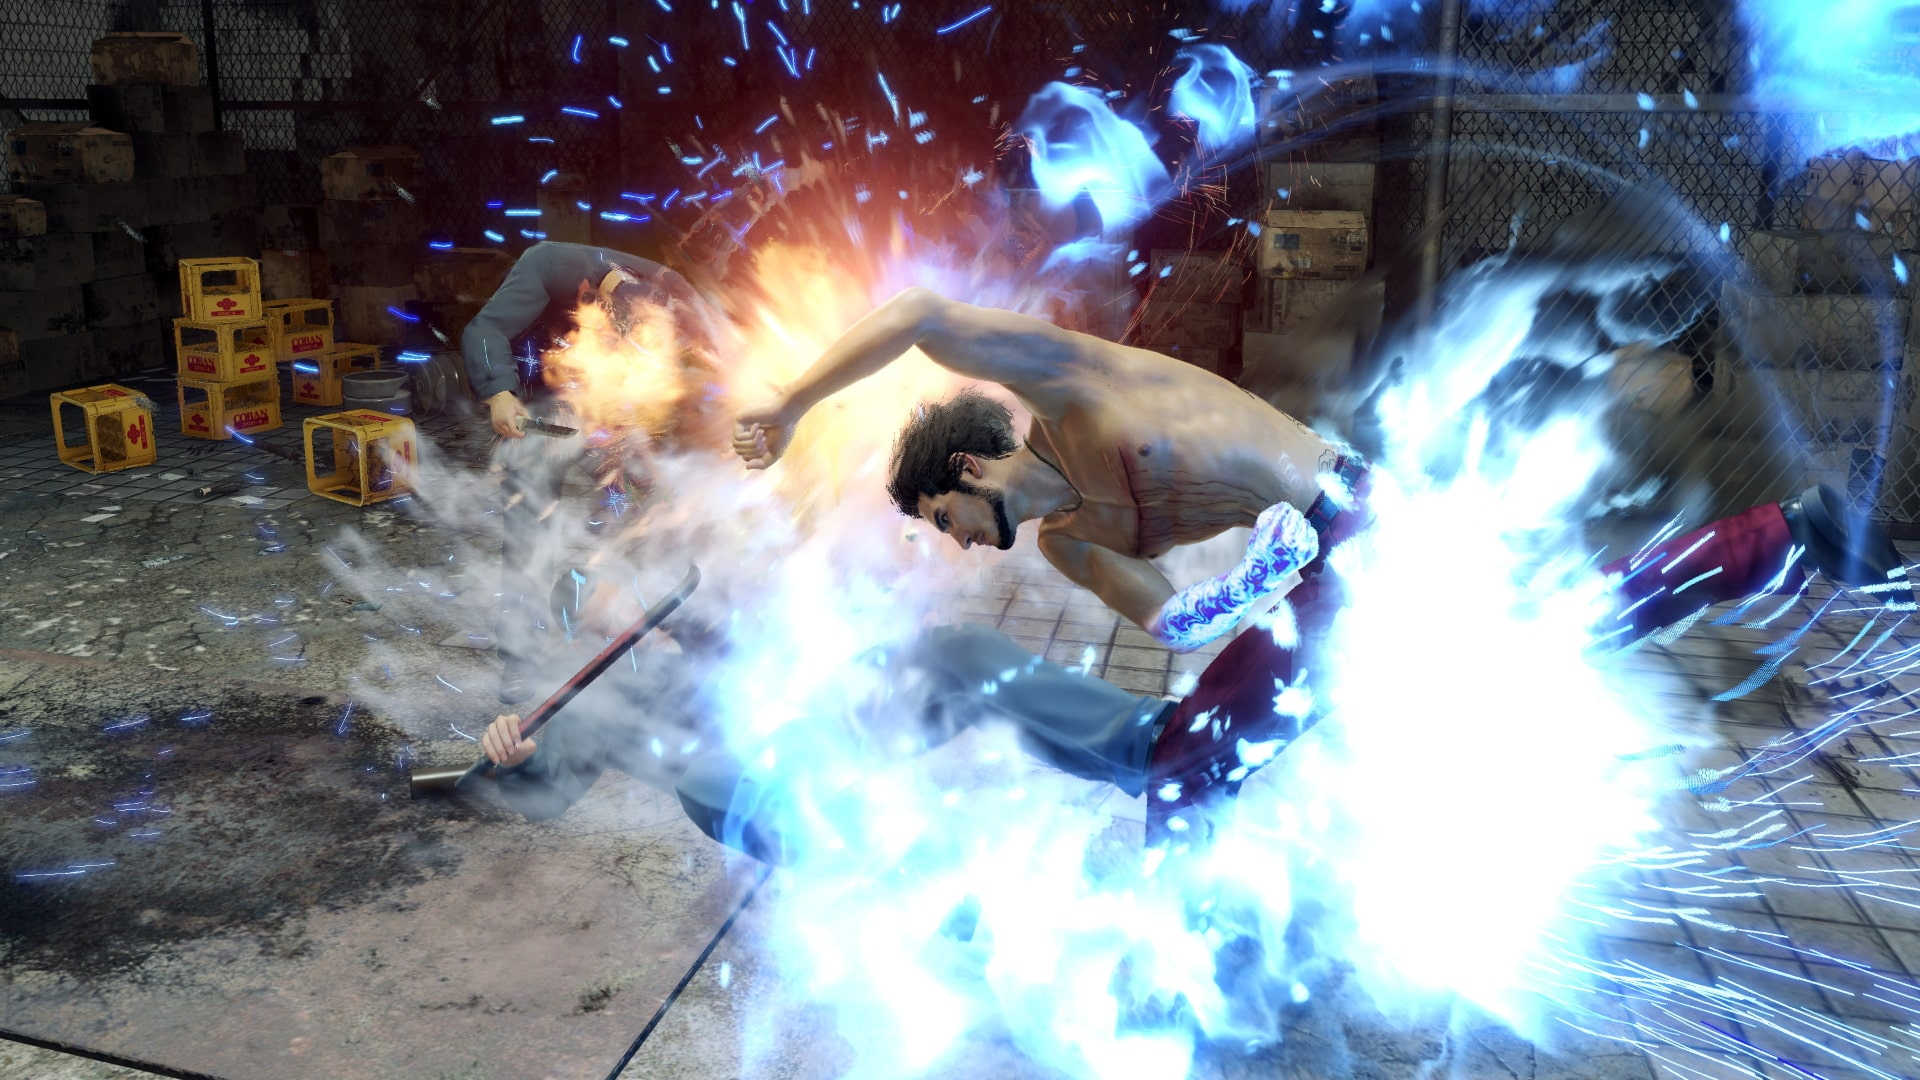 Kasuga punches an enemy with a swing that glows blue.